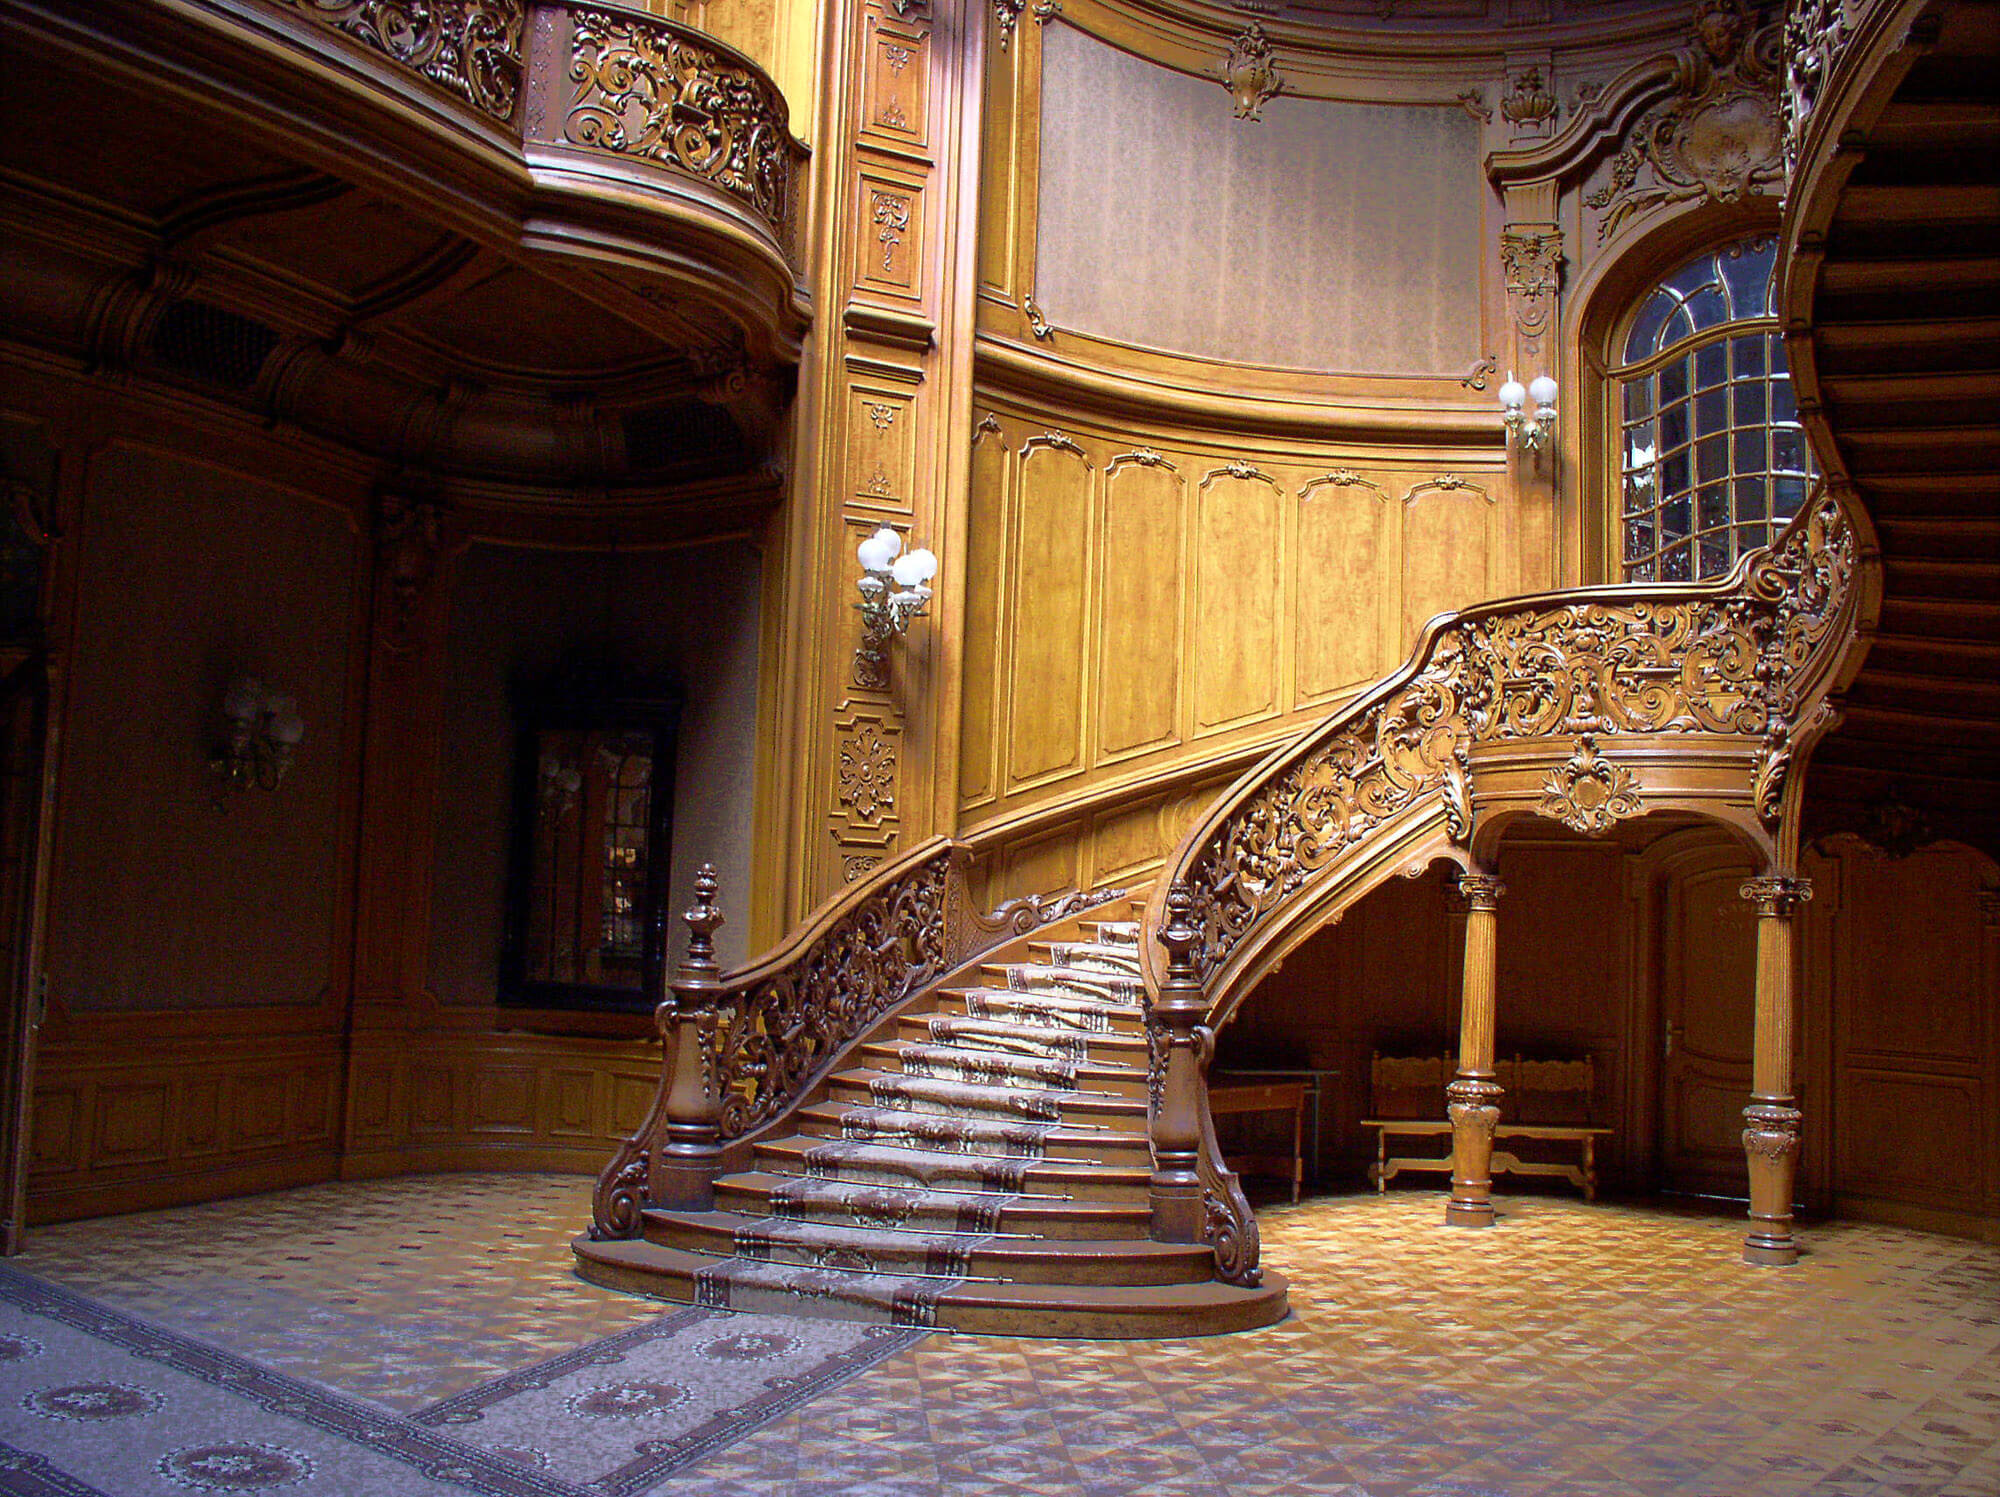 Grand staircase that seriously catches some eyes